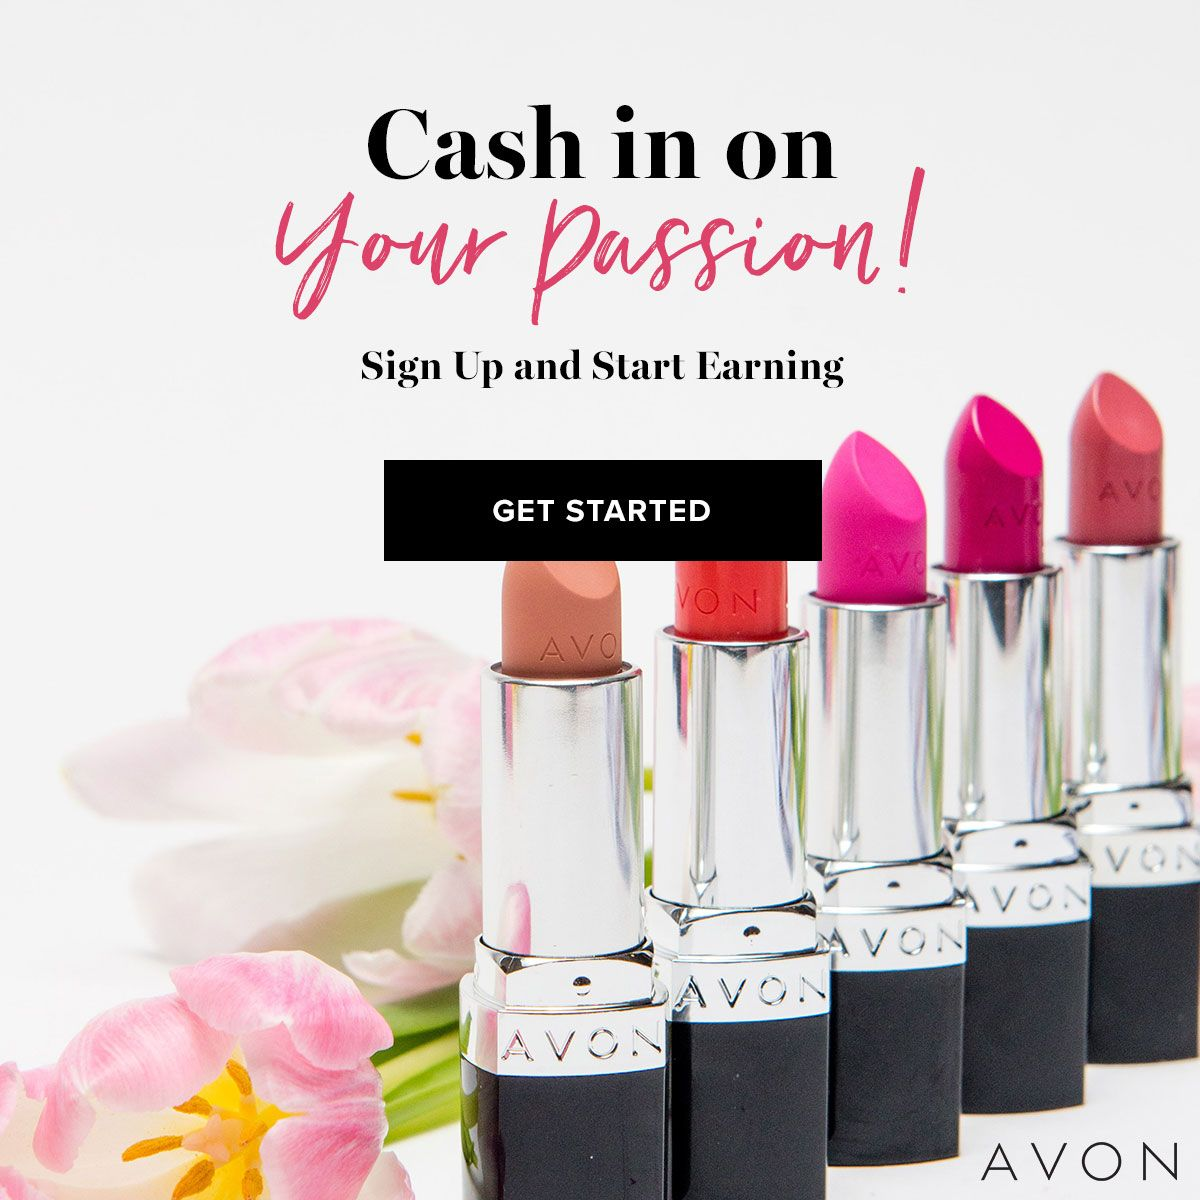 Make Beauty Your Business Selling Avon